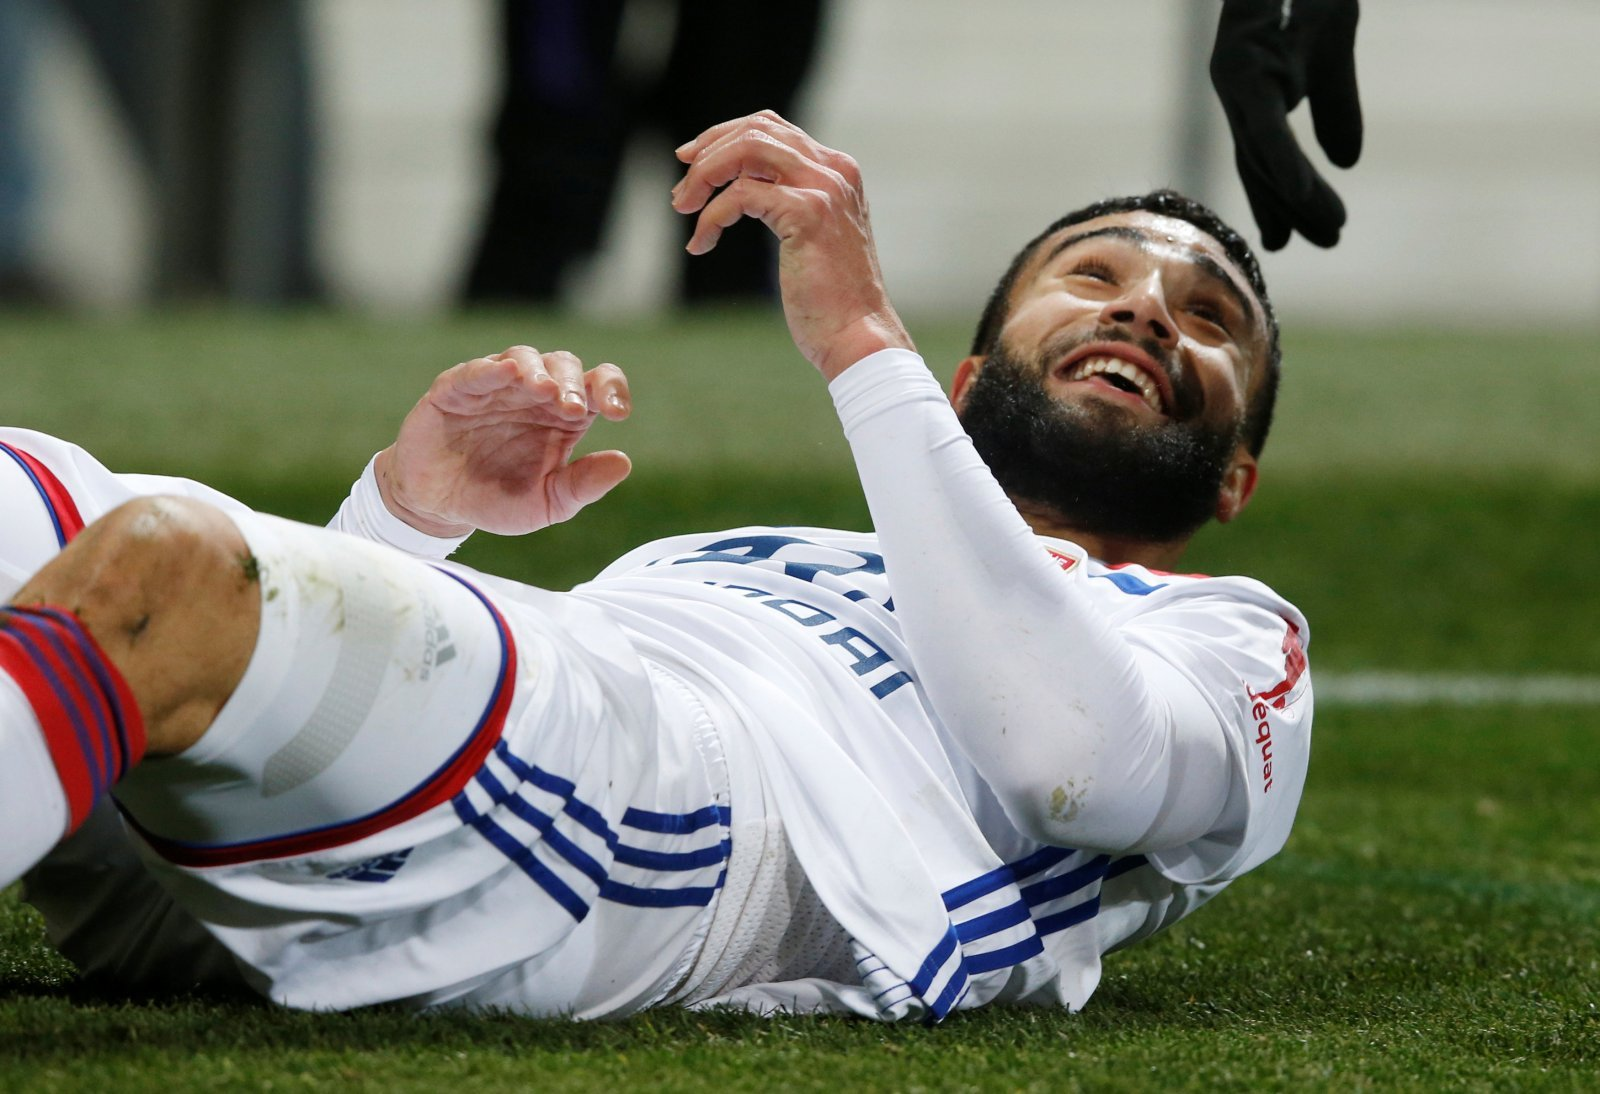 Marcel Brands must seal shock deal for Fekir